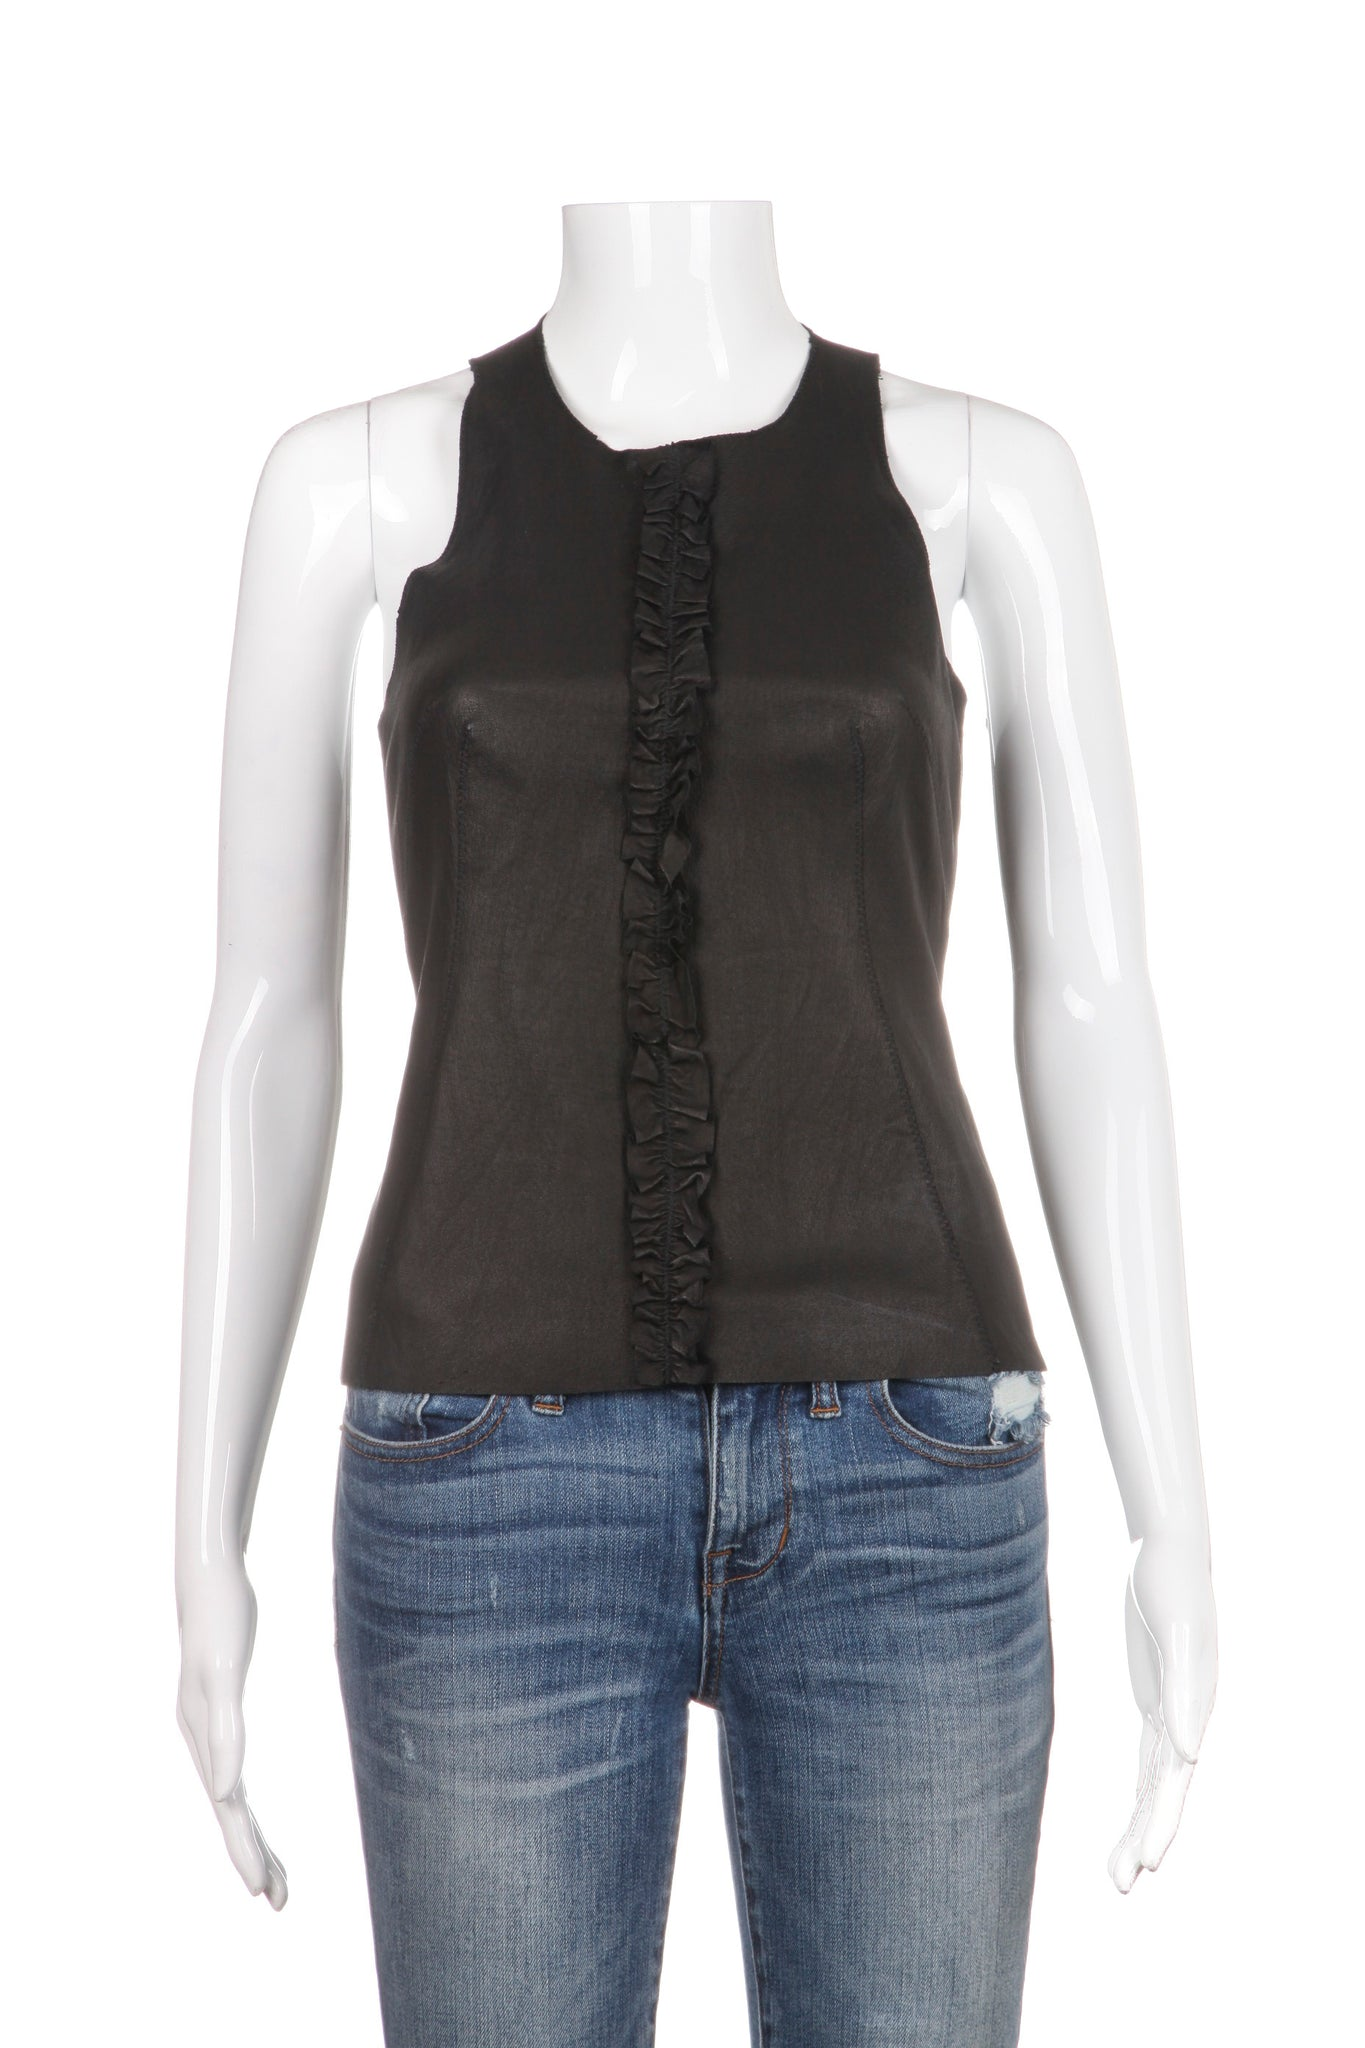 ILLIA Tank Top Black 100% Genuine Leather Size 0